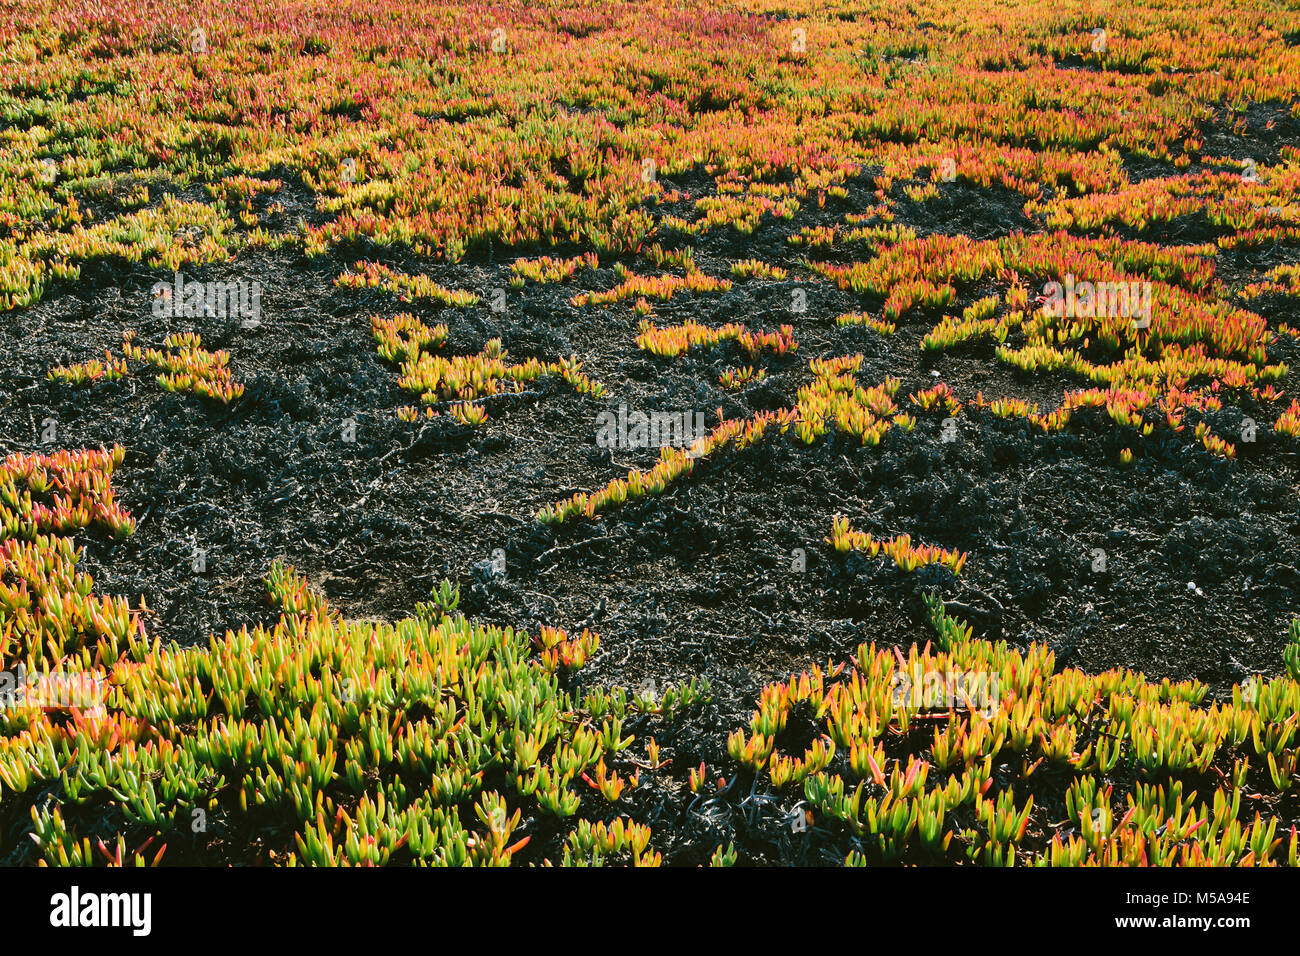 High angle view of landscape covered with ice plant. - Stock Image